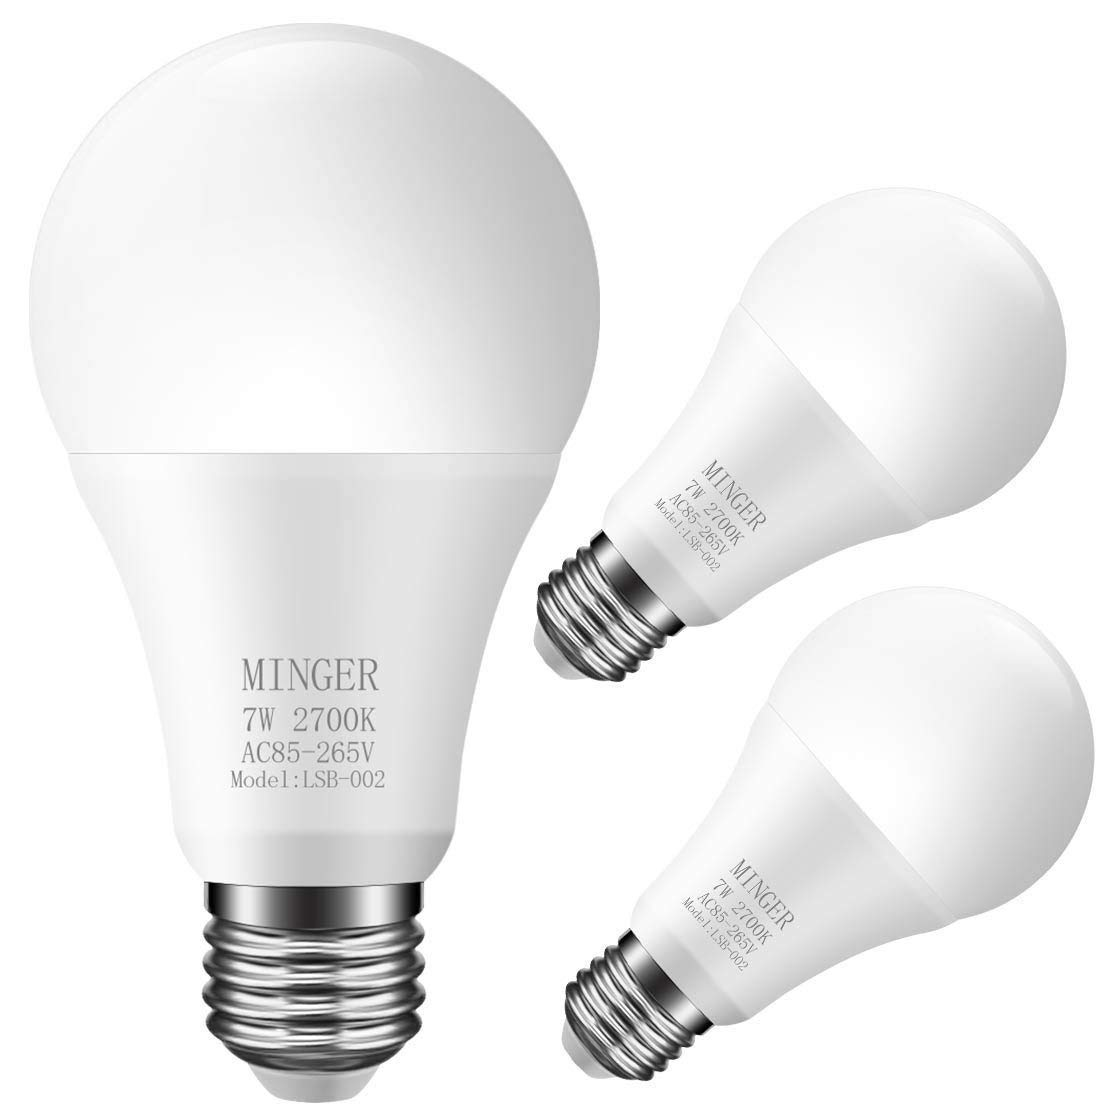 MINGER LED Dusk-to-Dawn Light Bulb, 7W Smart Sensor Bulbs, 60W Equiv.Automatic Indoor/Outdoor Lighting Lamp for Porch, Hallway, Patio, Garage (E26/E27, 600lumen, Warm White) [3-Pack]